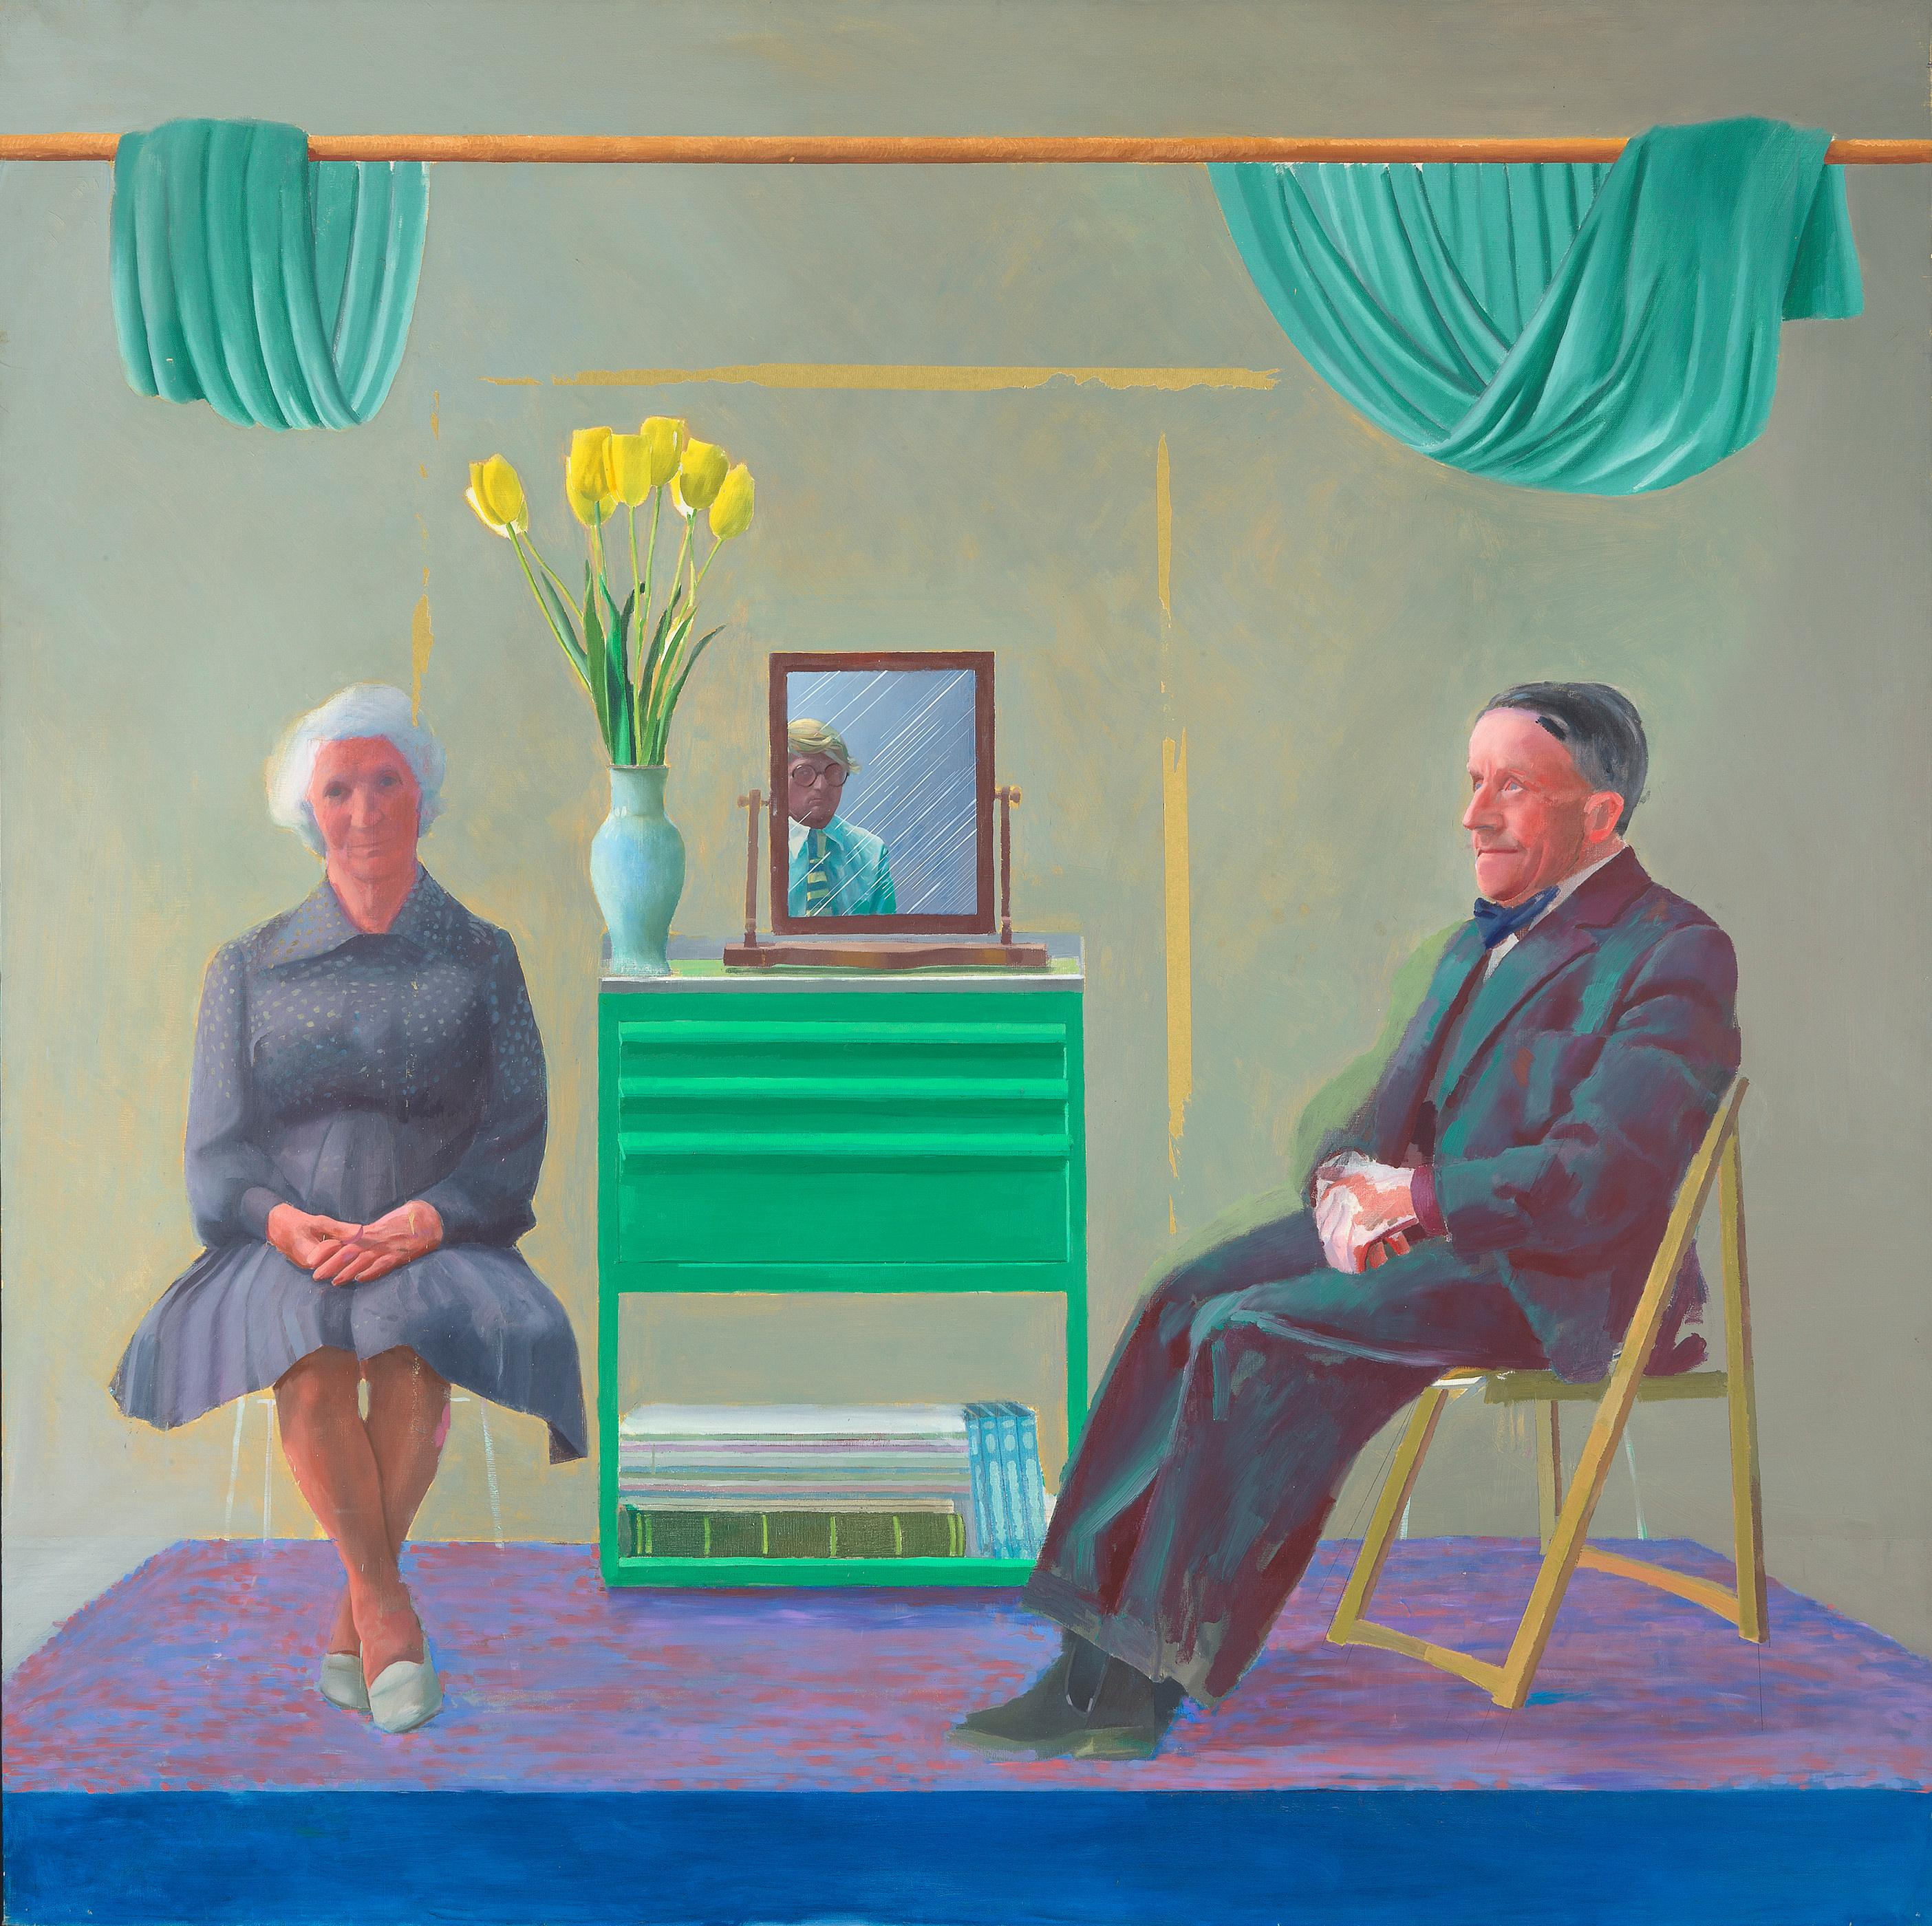 Hockney unveils the portrait that caused a family rift